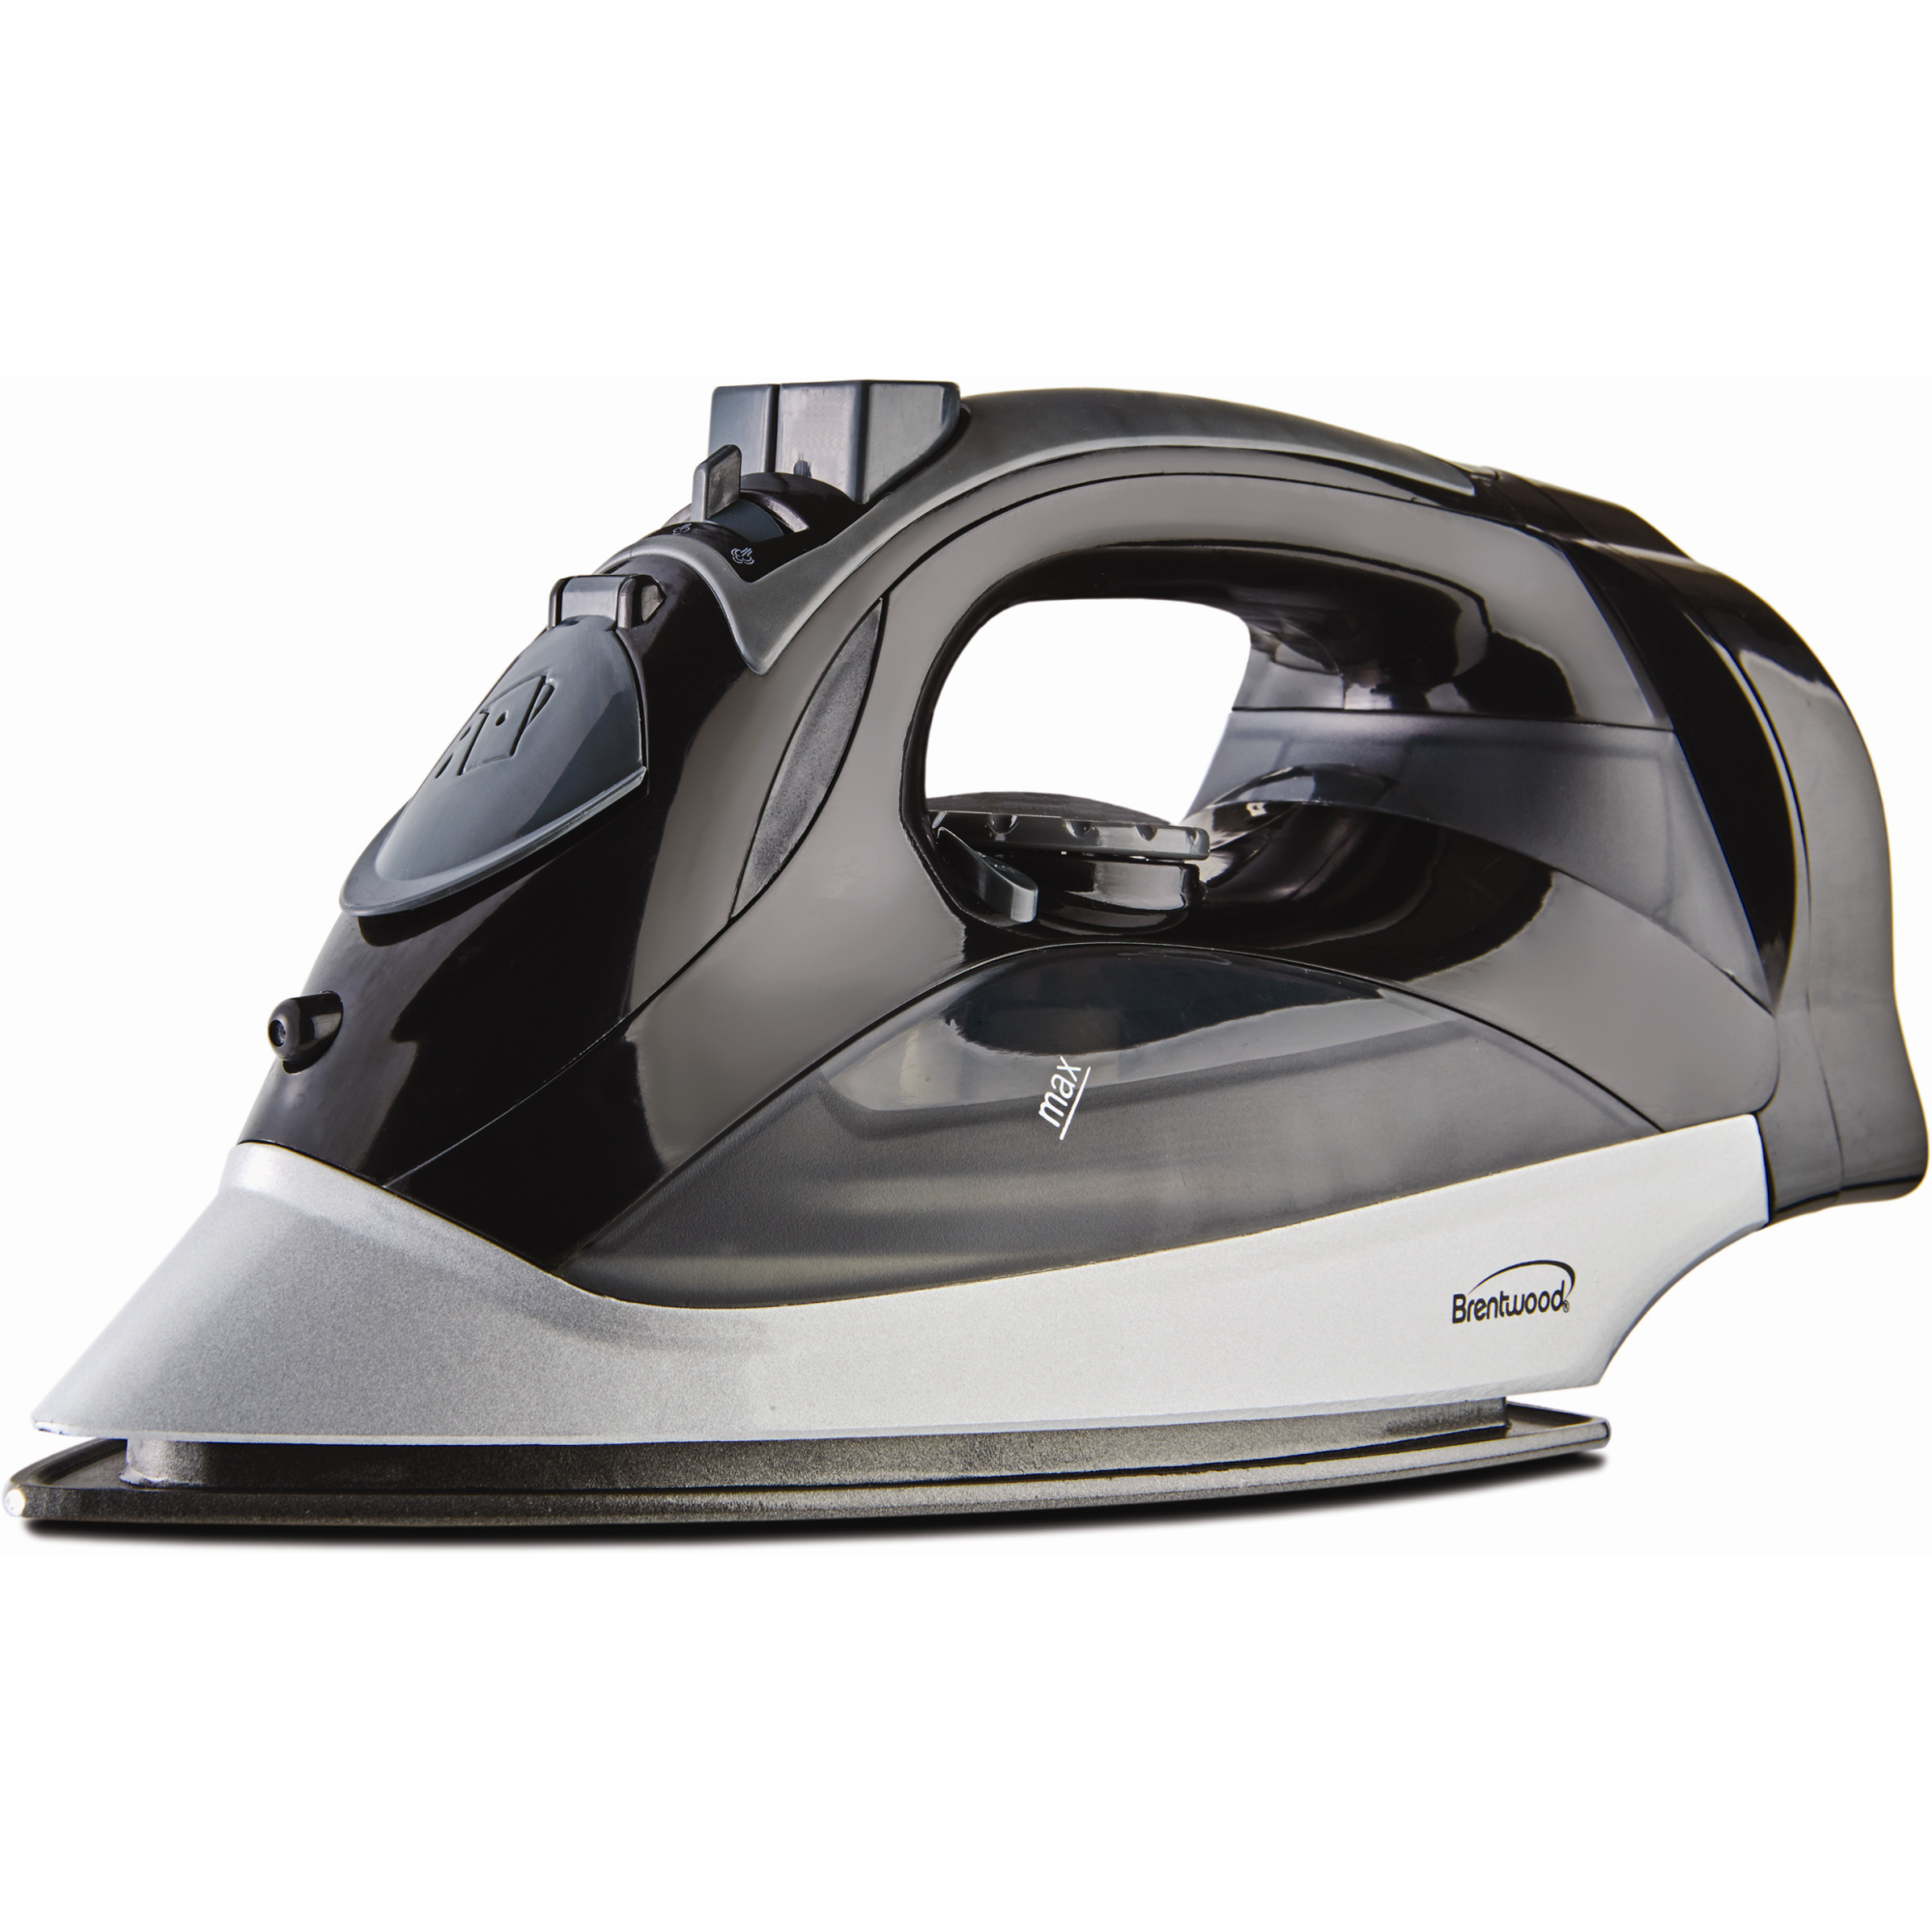 Brentwood [mpi-59w] Steam Iron With Retractable Cord [white] - 1200 W - White (mpi59b)